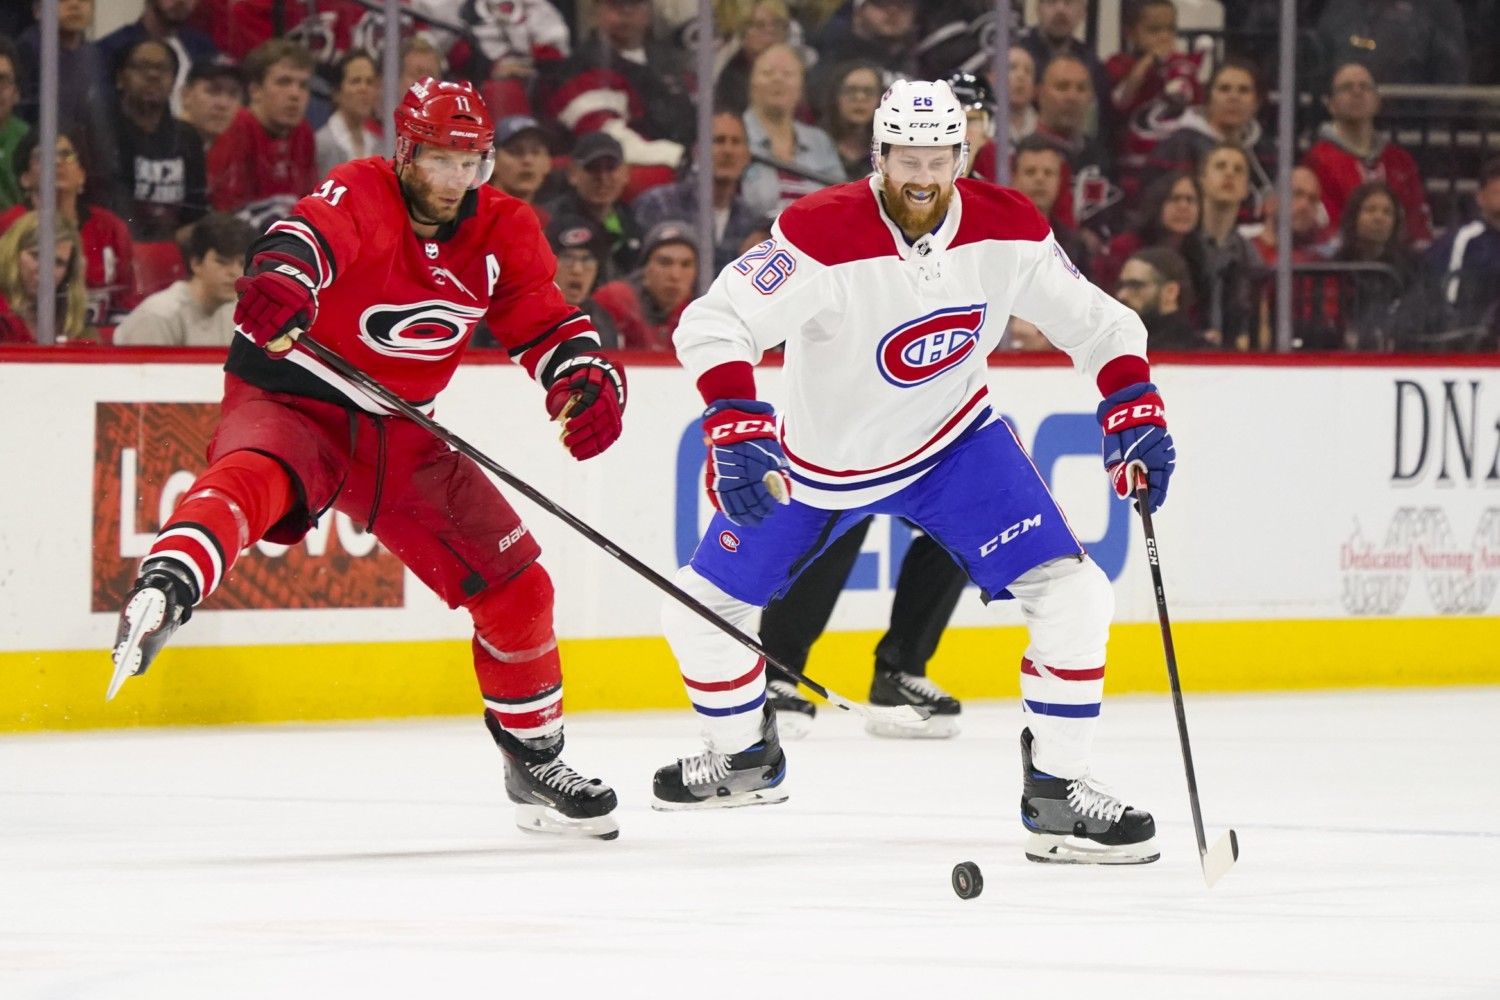 Canadiens trade Kovalchuk to Capitals for 3rd-round pick